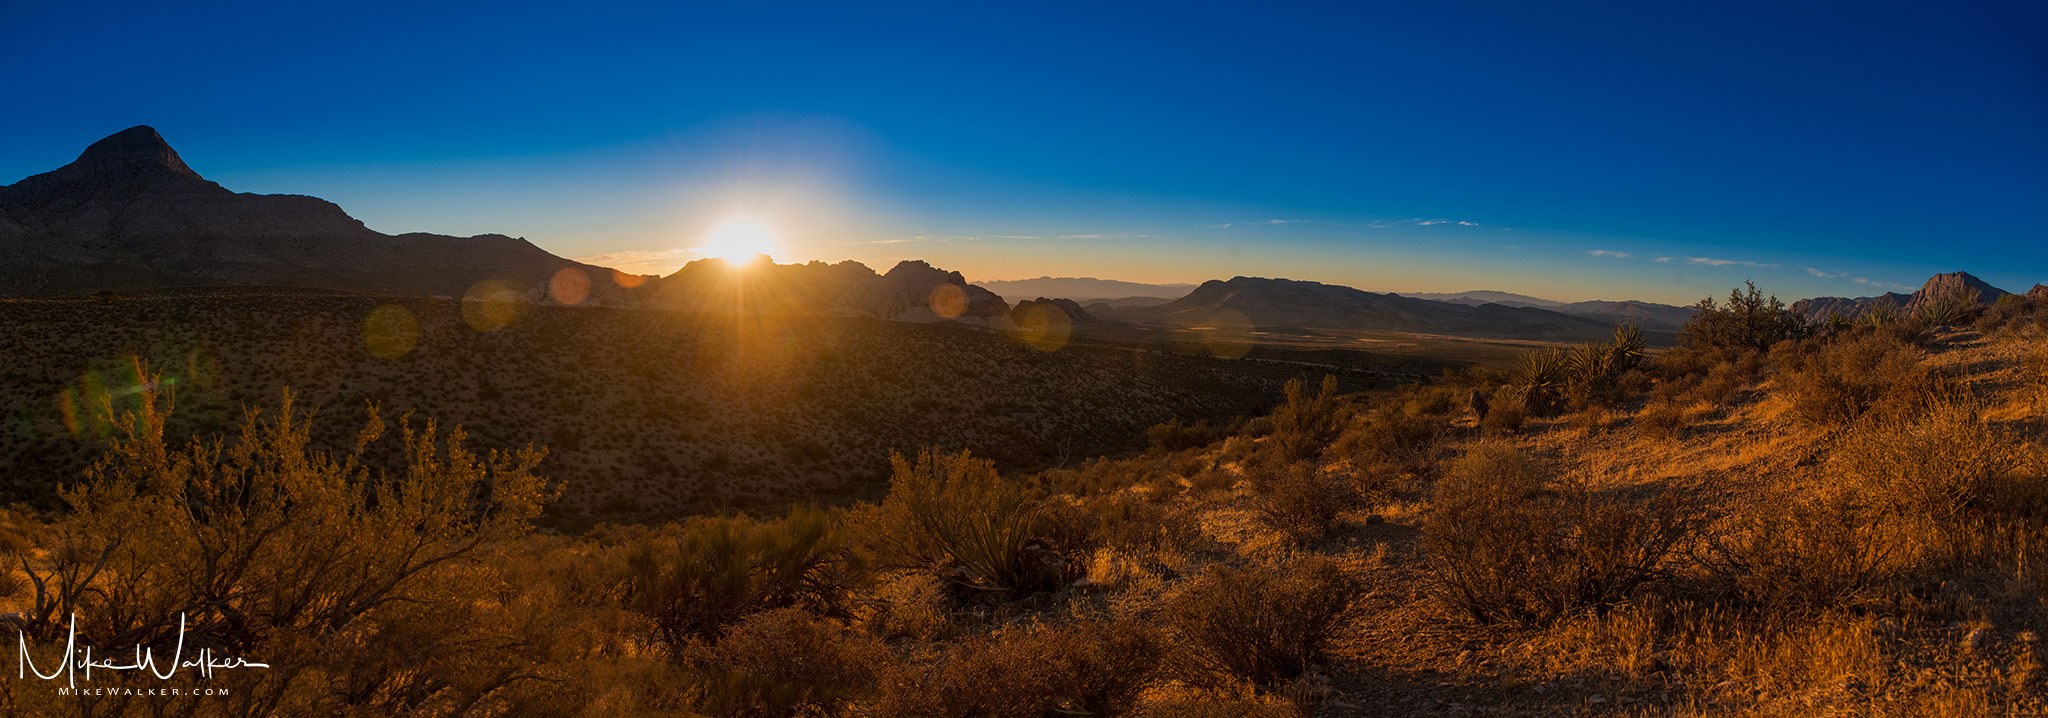 Sunrise in Red Rock Canyon. Travel Photography © Mike Walker